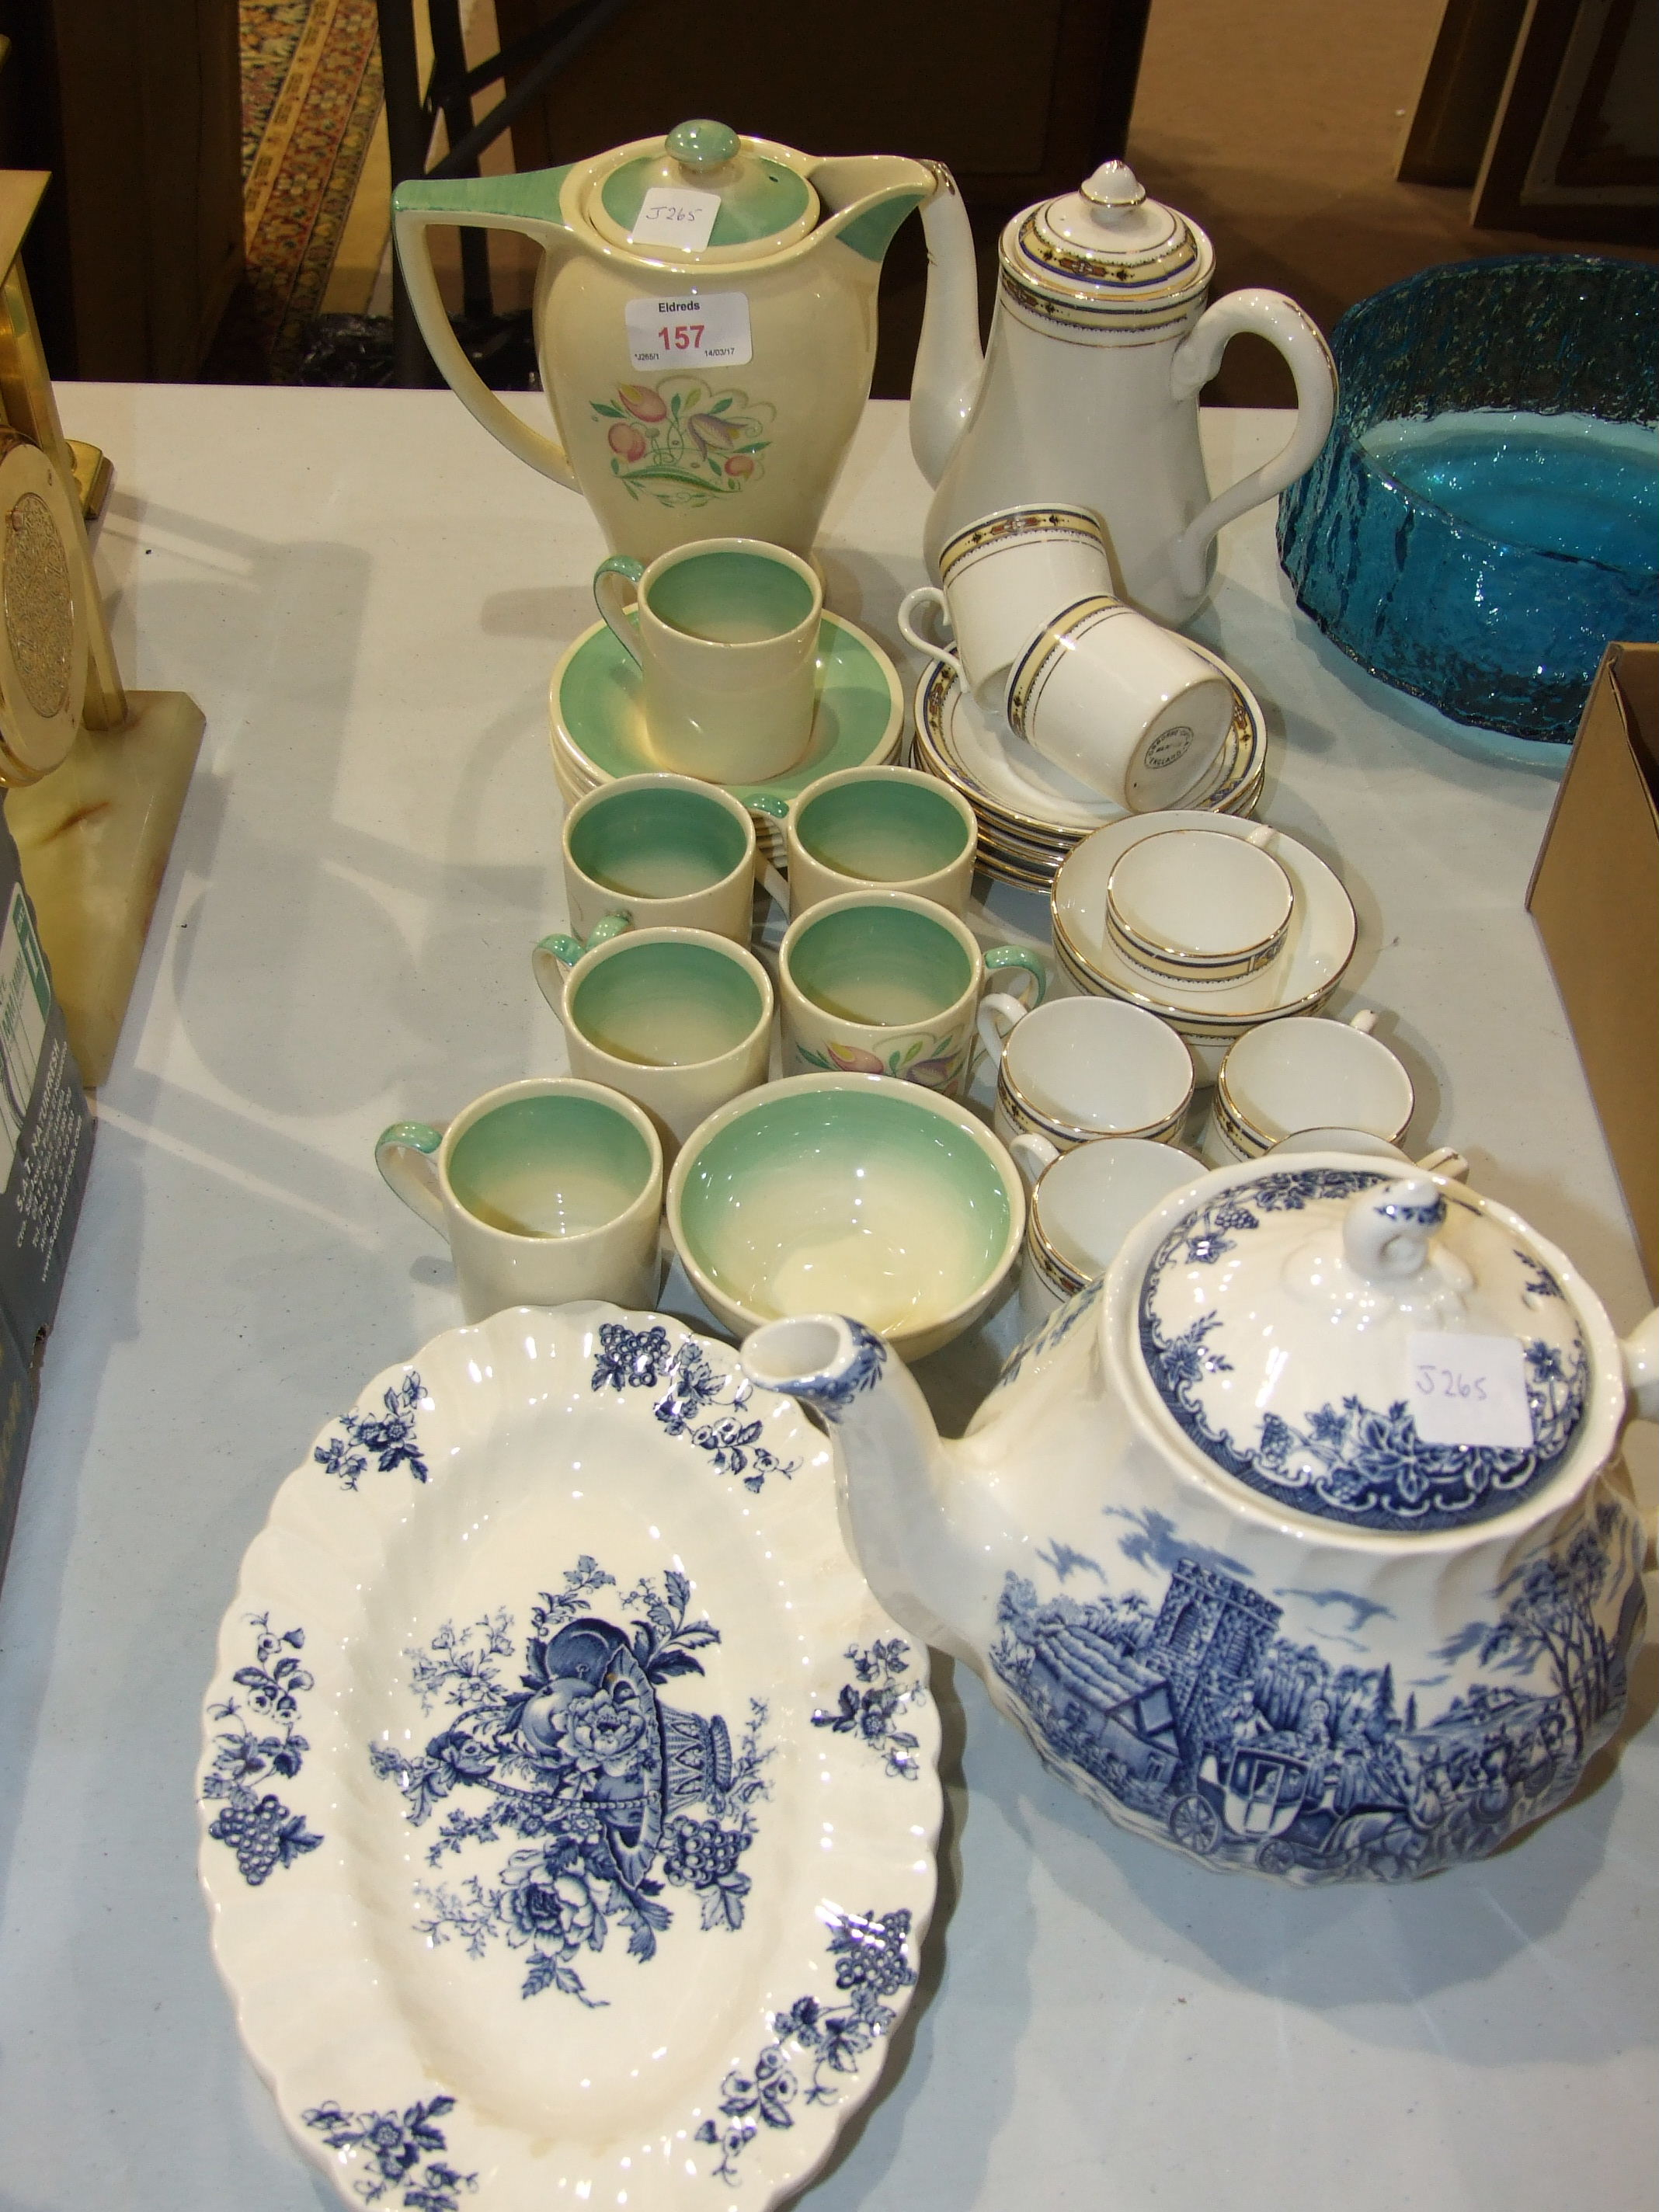 Lot 157 - A fourteen-piece Susie Cooper Dresden Spray pattern coffee service, other tea ware and ceramics.